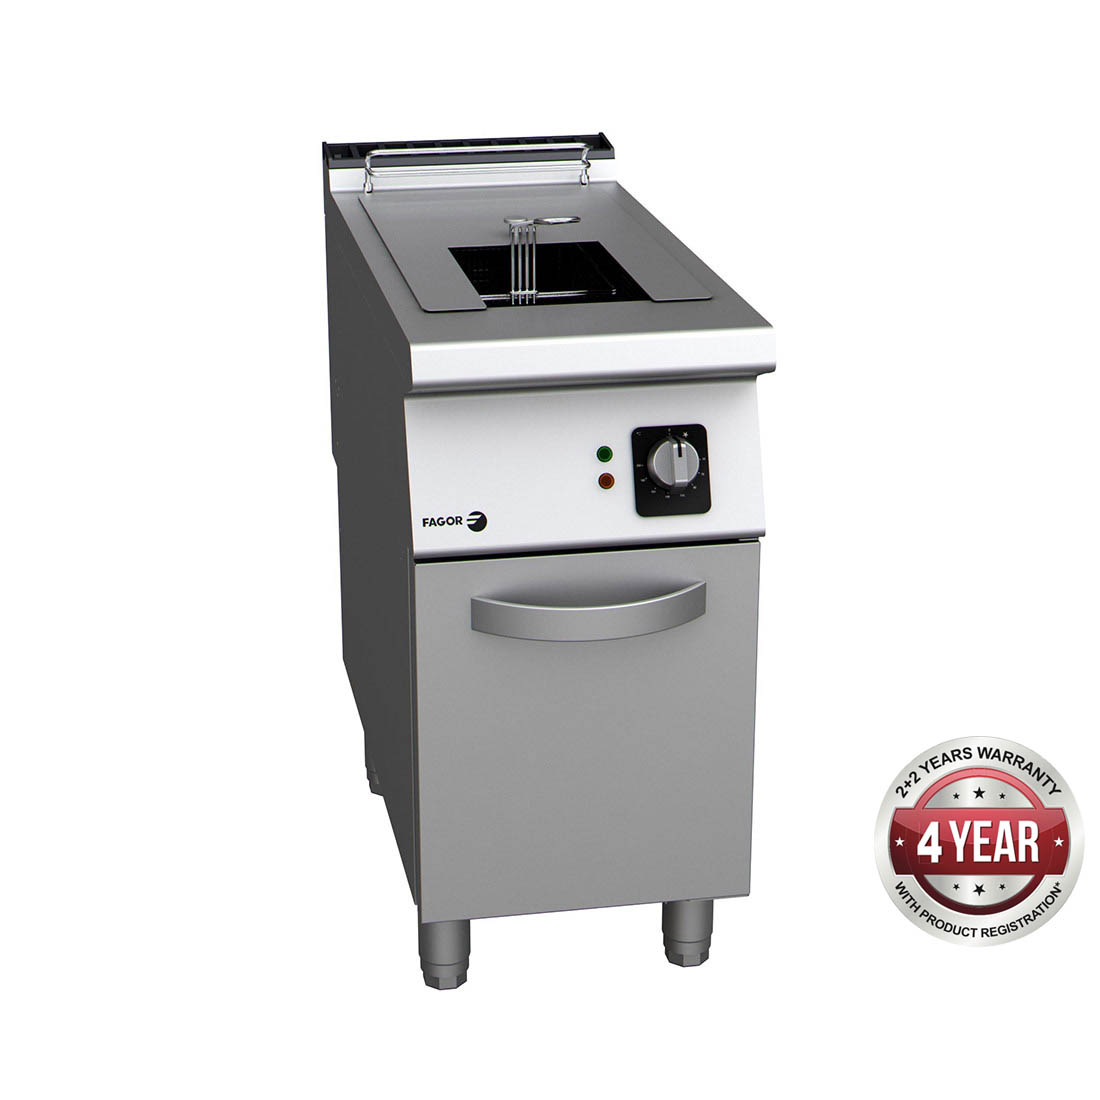 Fagor 900 Series Gas Deep Fat Fryer - F-G9115